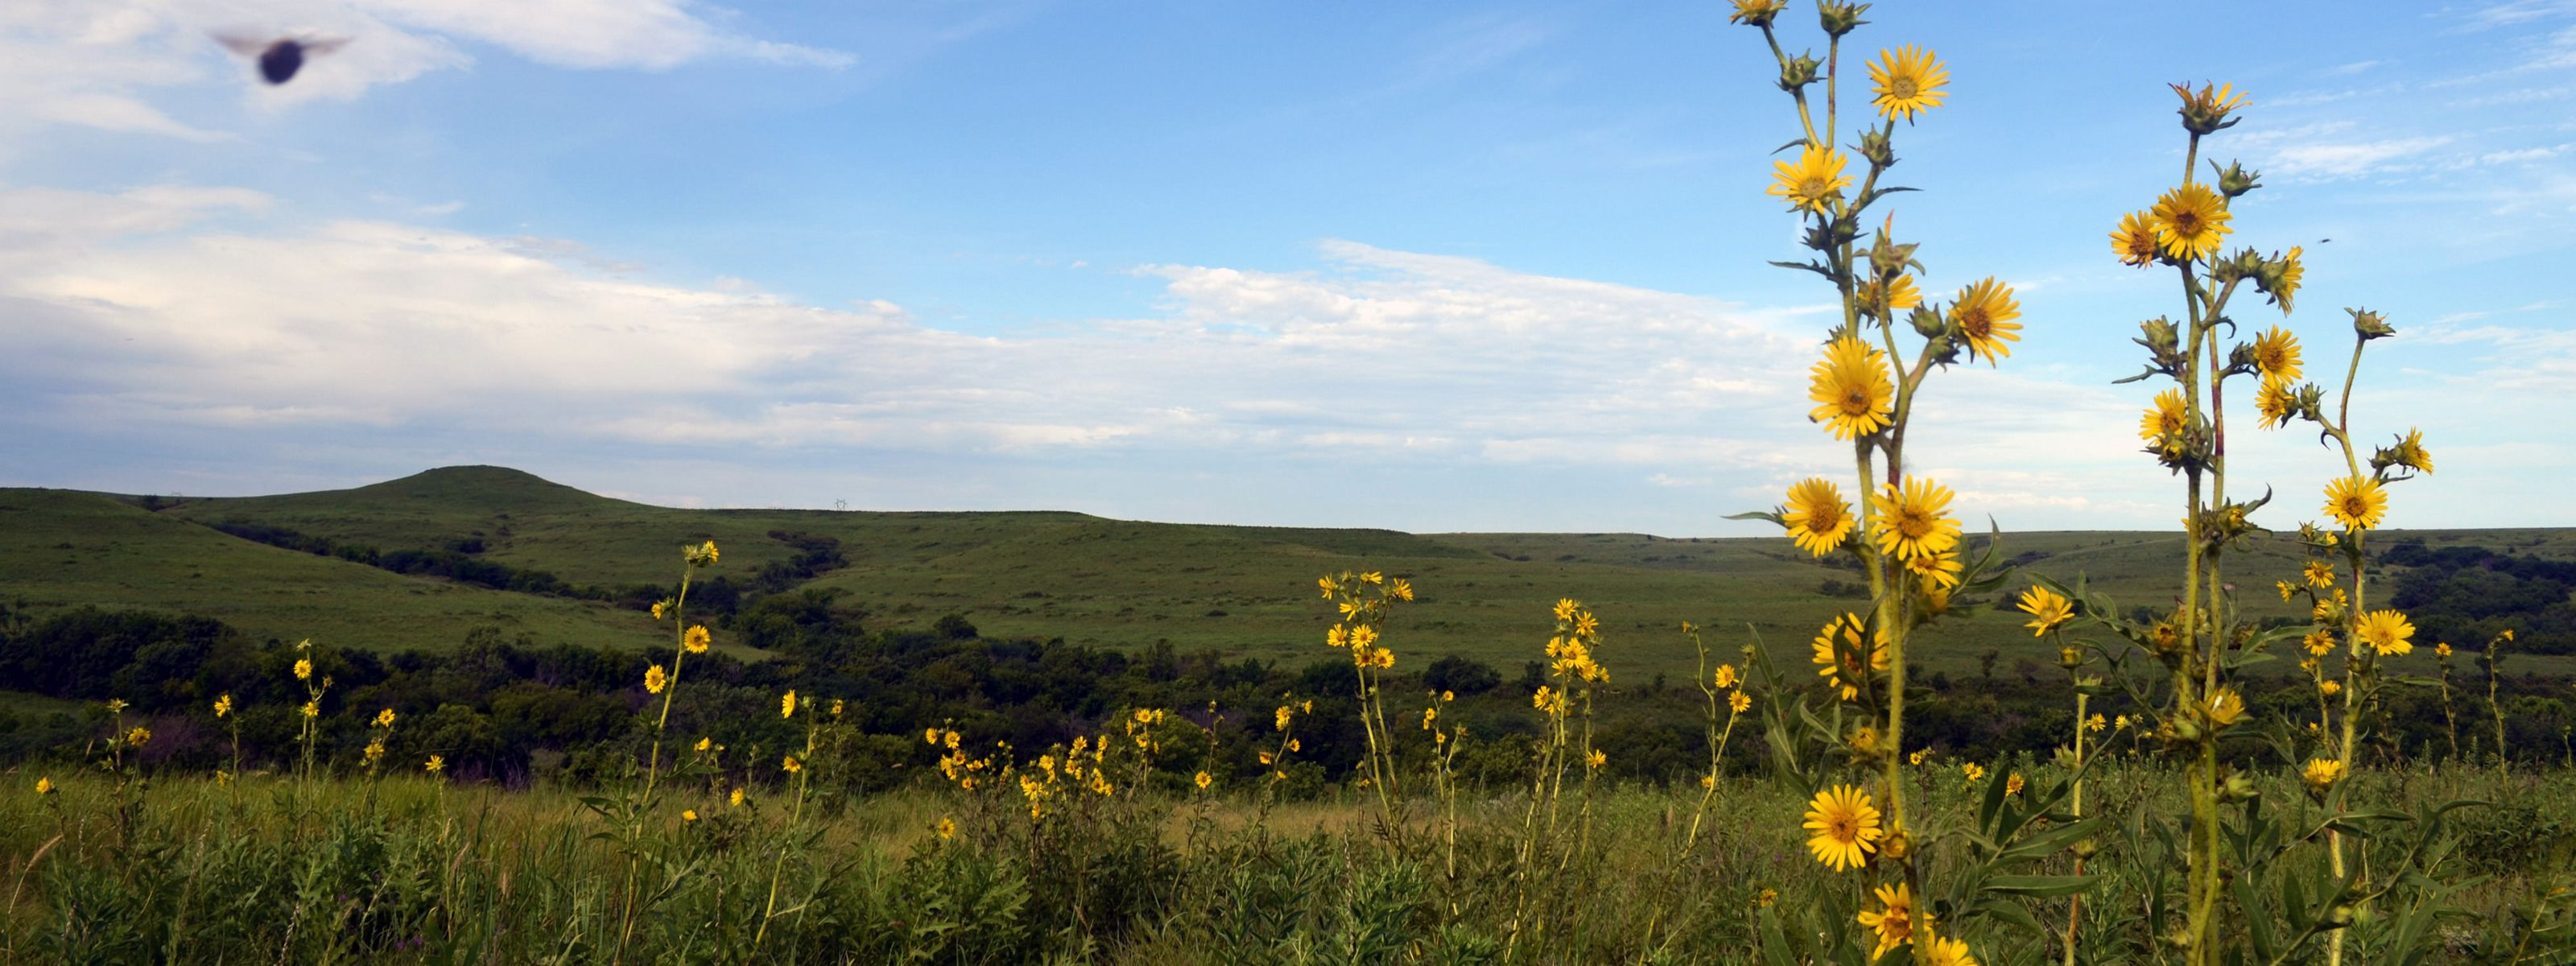 Wildflower bloom over tallgrass prairie as far as the eye can see at Konza Prairie Biological Station.